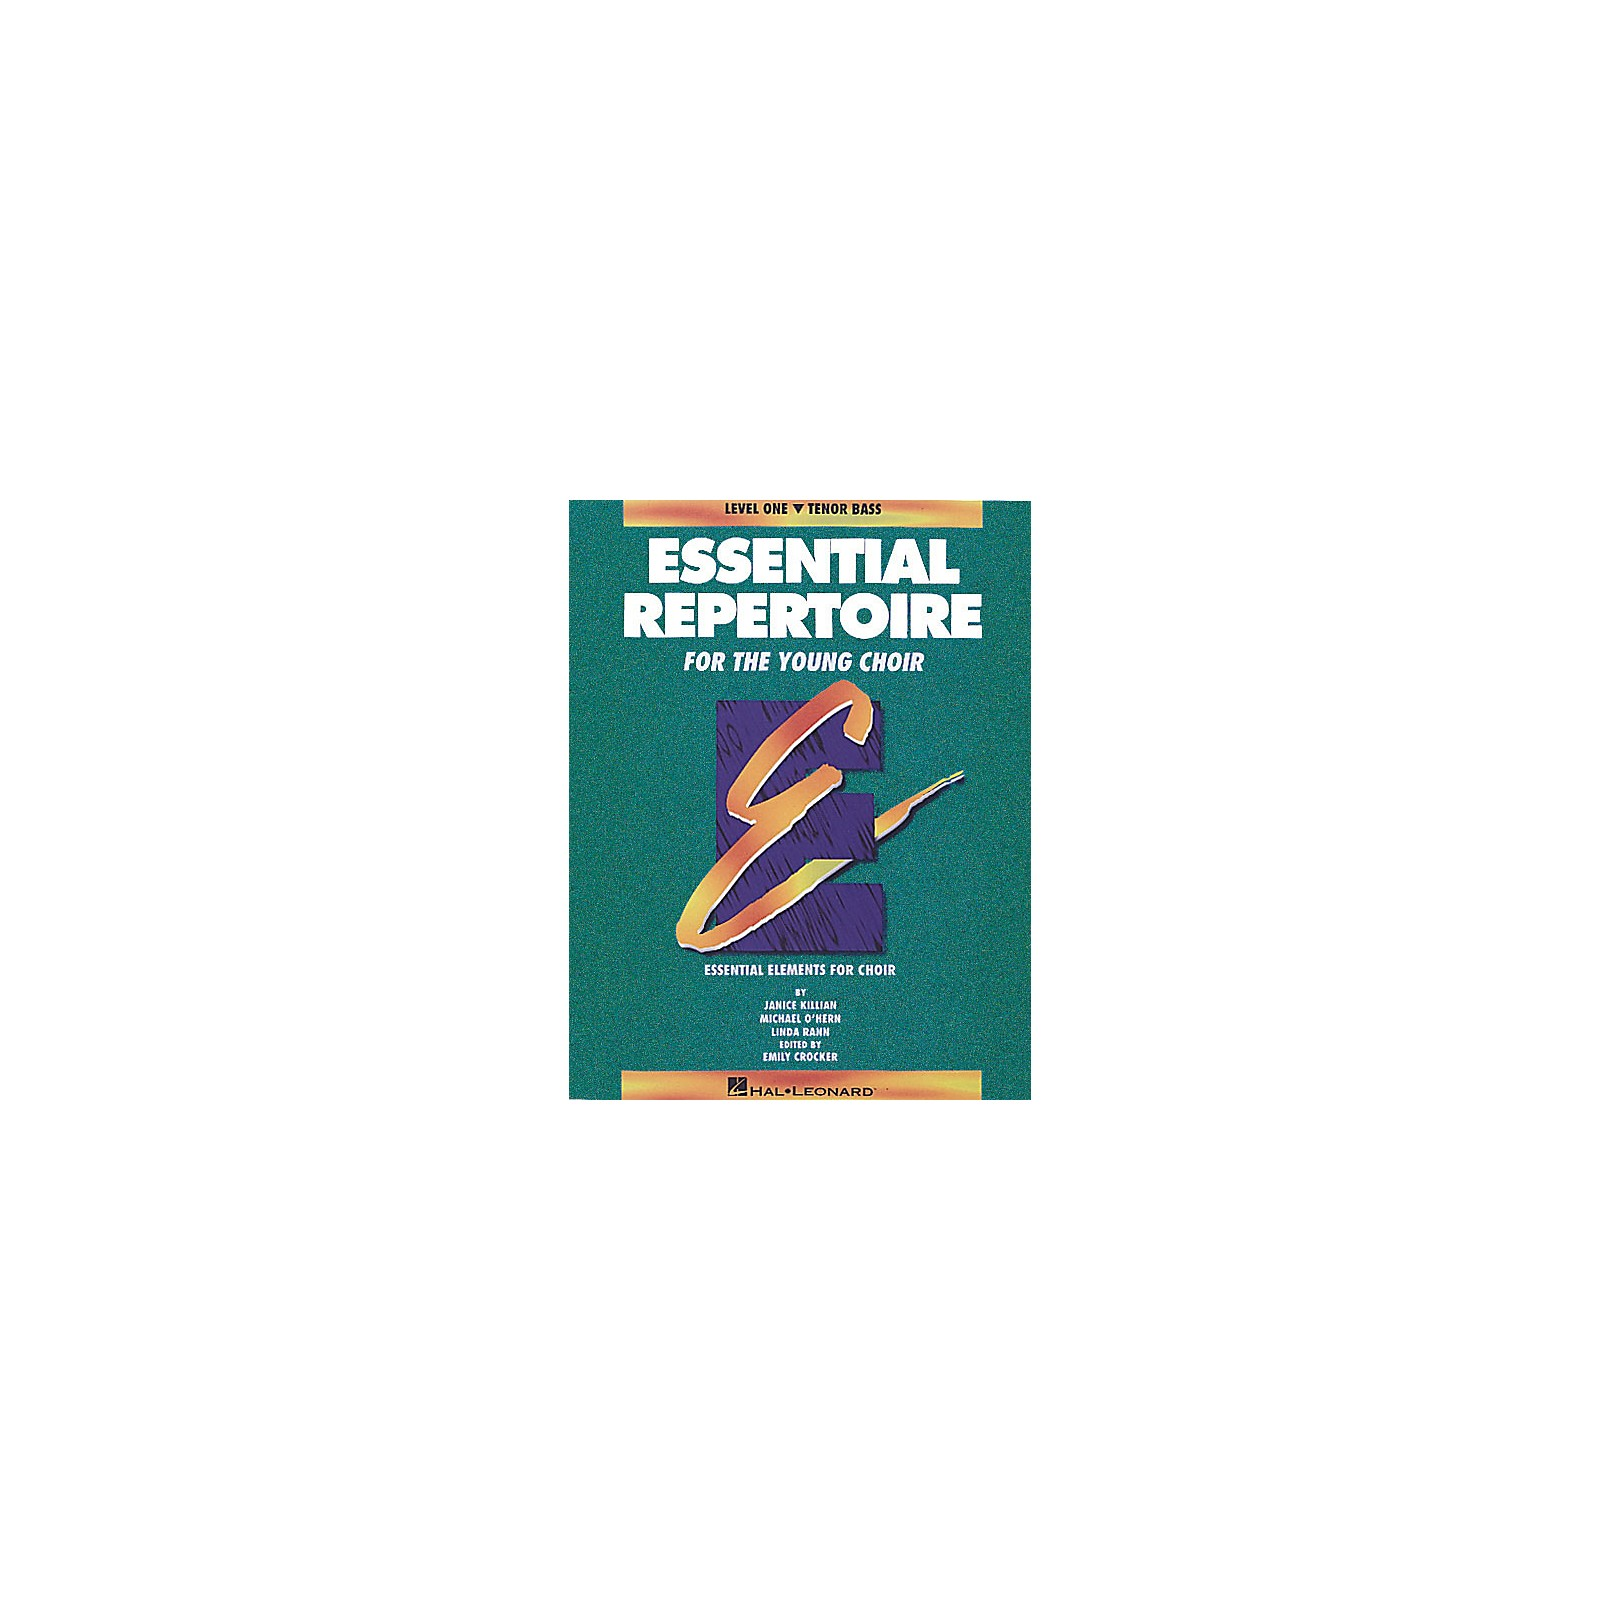 Hal Leonard Essential Repertoire for the Young Choir Tenor Bass Part-Learning CDs 3 Composed by Janice Killian